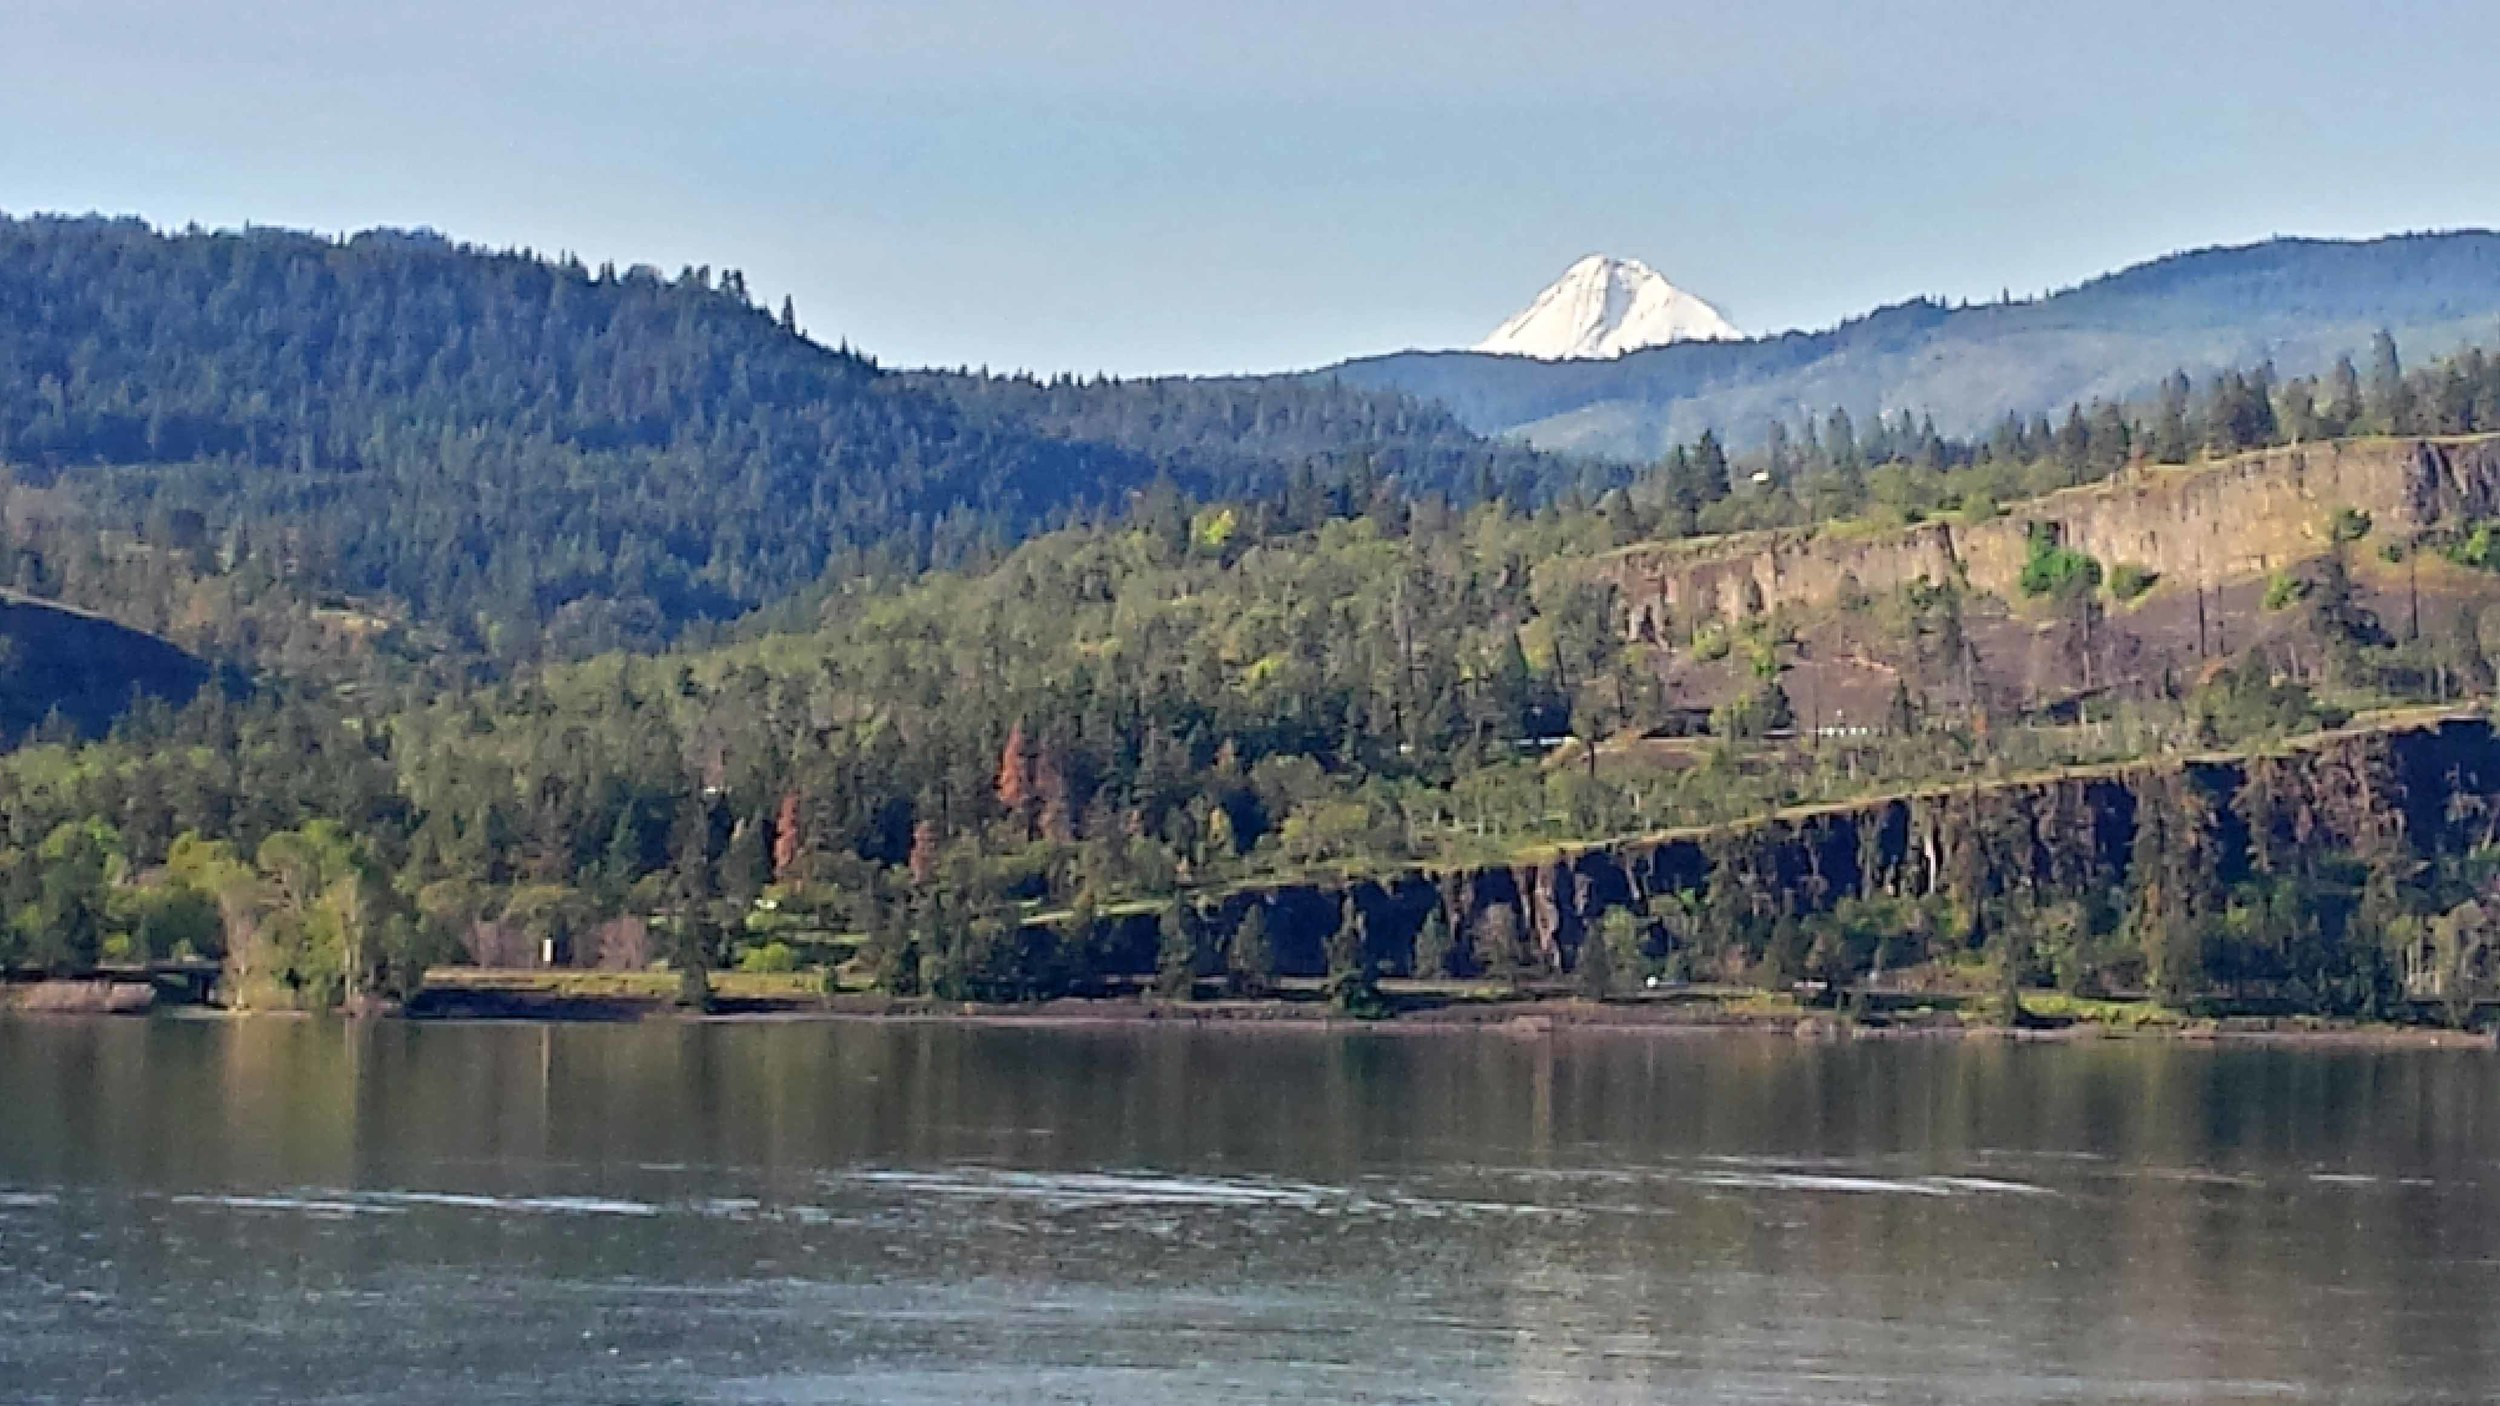 Looking south to Mount Hood. Photo: (c) Barb Ayers, DogDiary.org